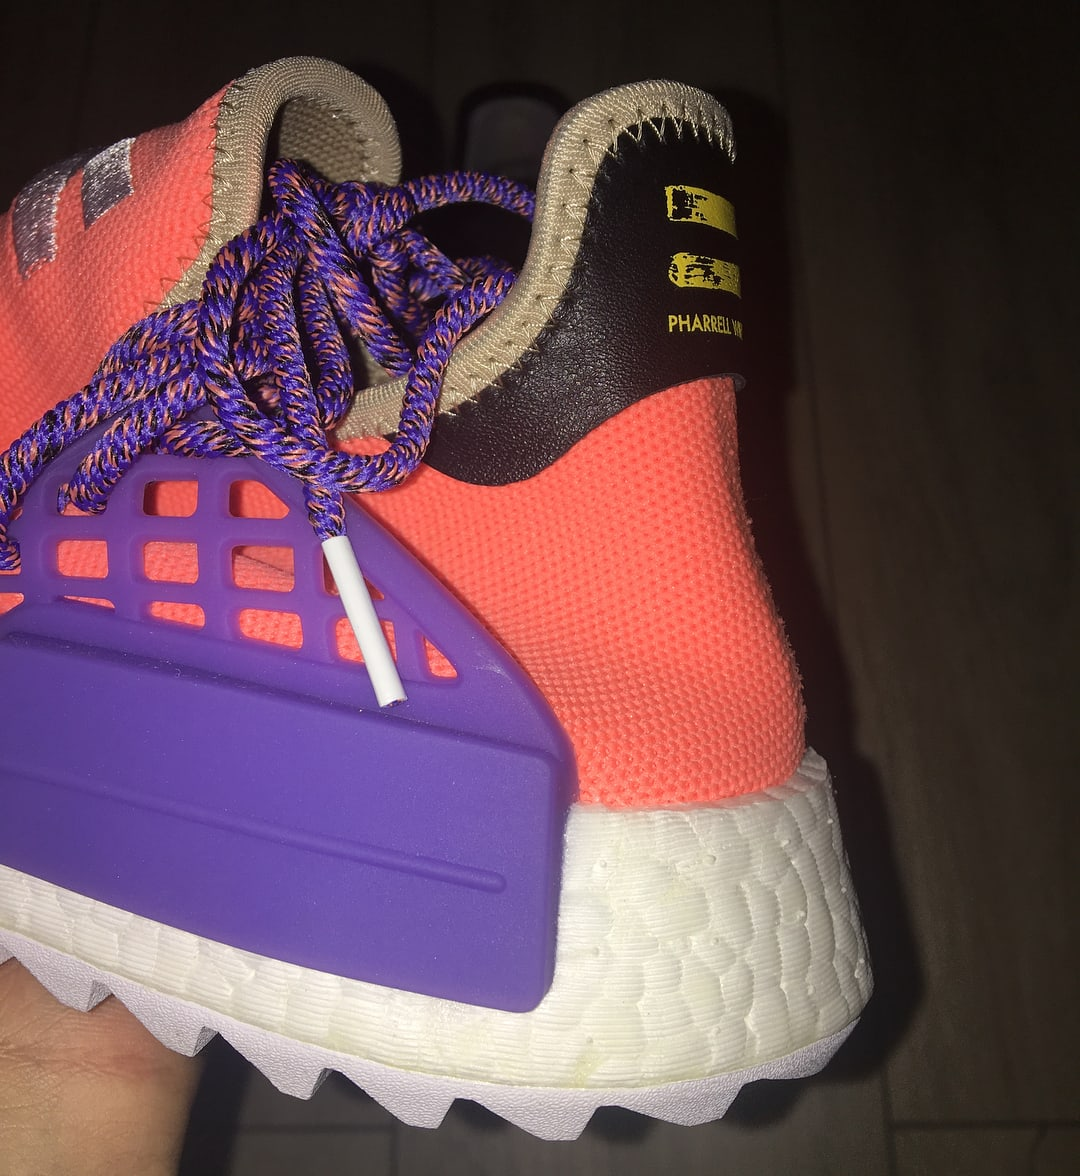 Pharrell x Adidas NMD Hu Breathe Walk Orange Purple Sample Heel